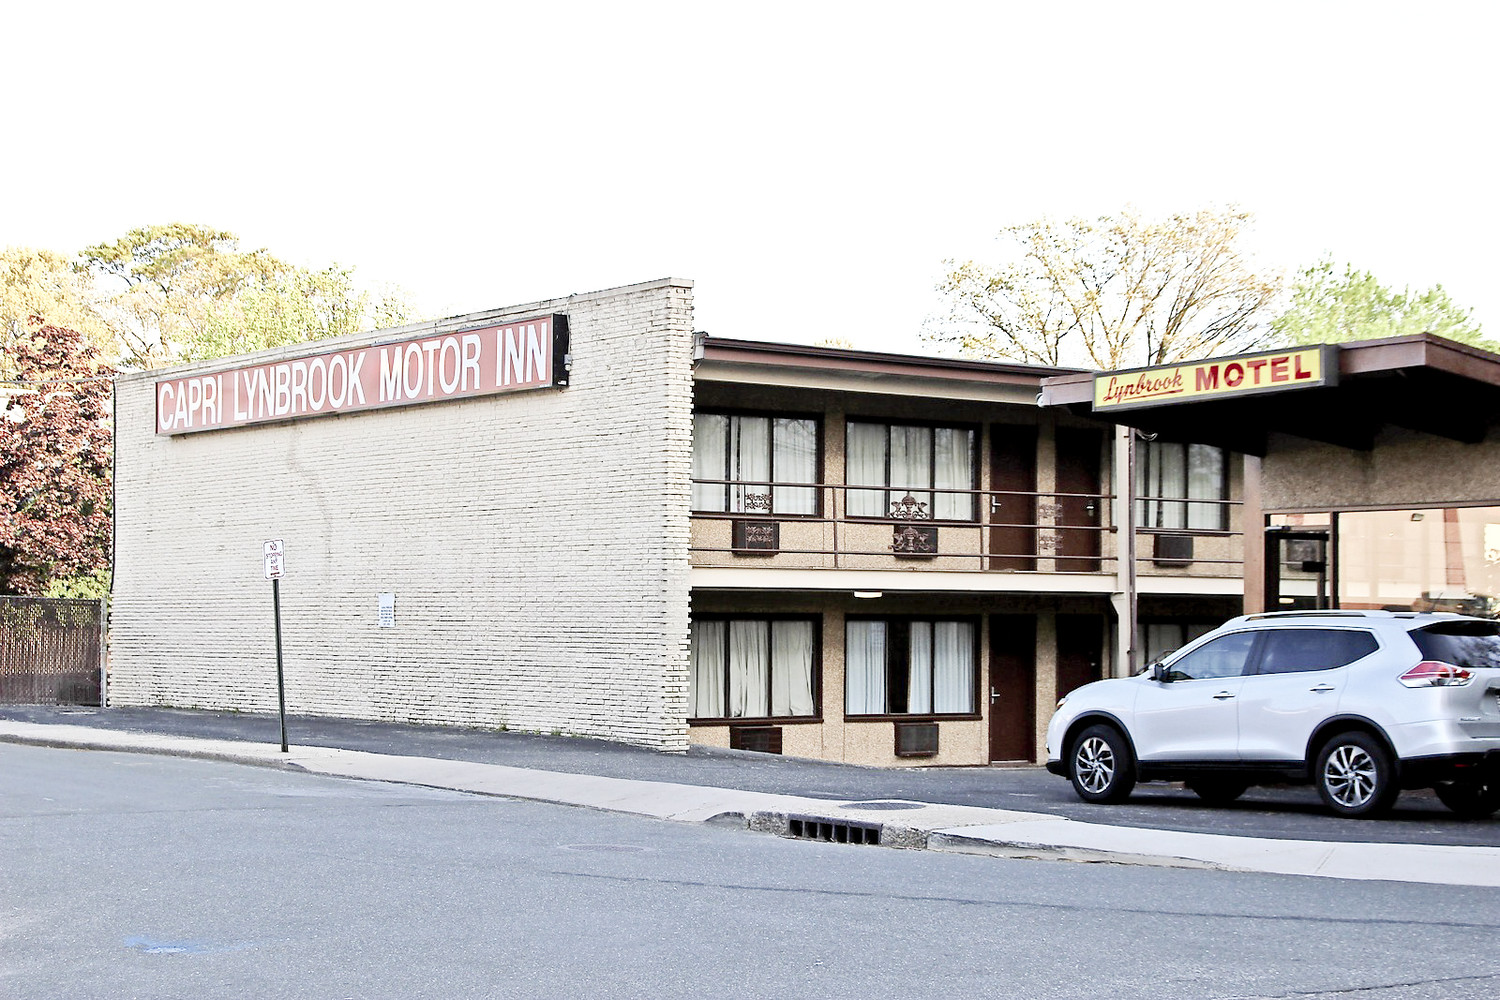 Police arrested two heroin dealers after a Lynbrook woman died of an overdose at the Capri Lynbrook Motor Inn. Village officials are continuing to probe hotel owners amid a series of crimes committed at the facility.